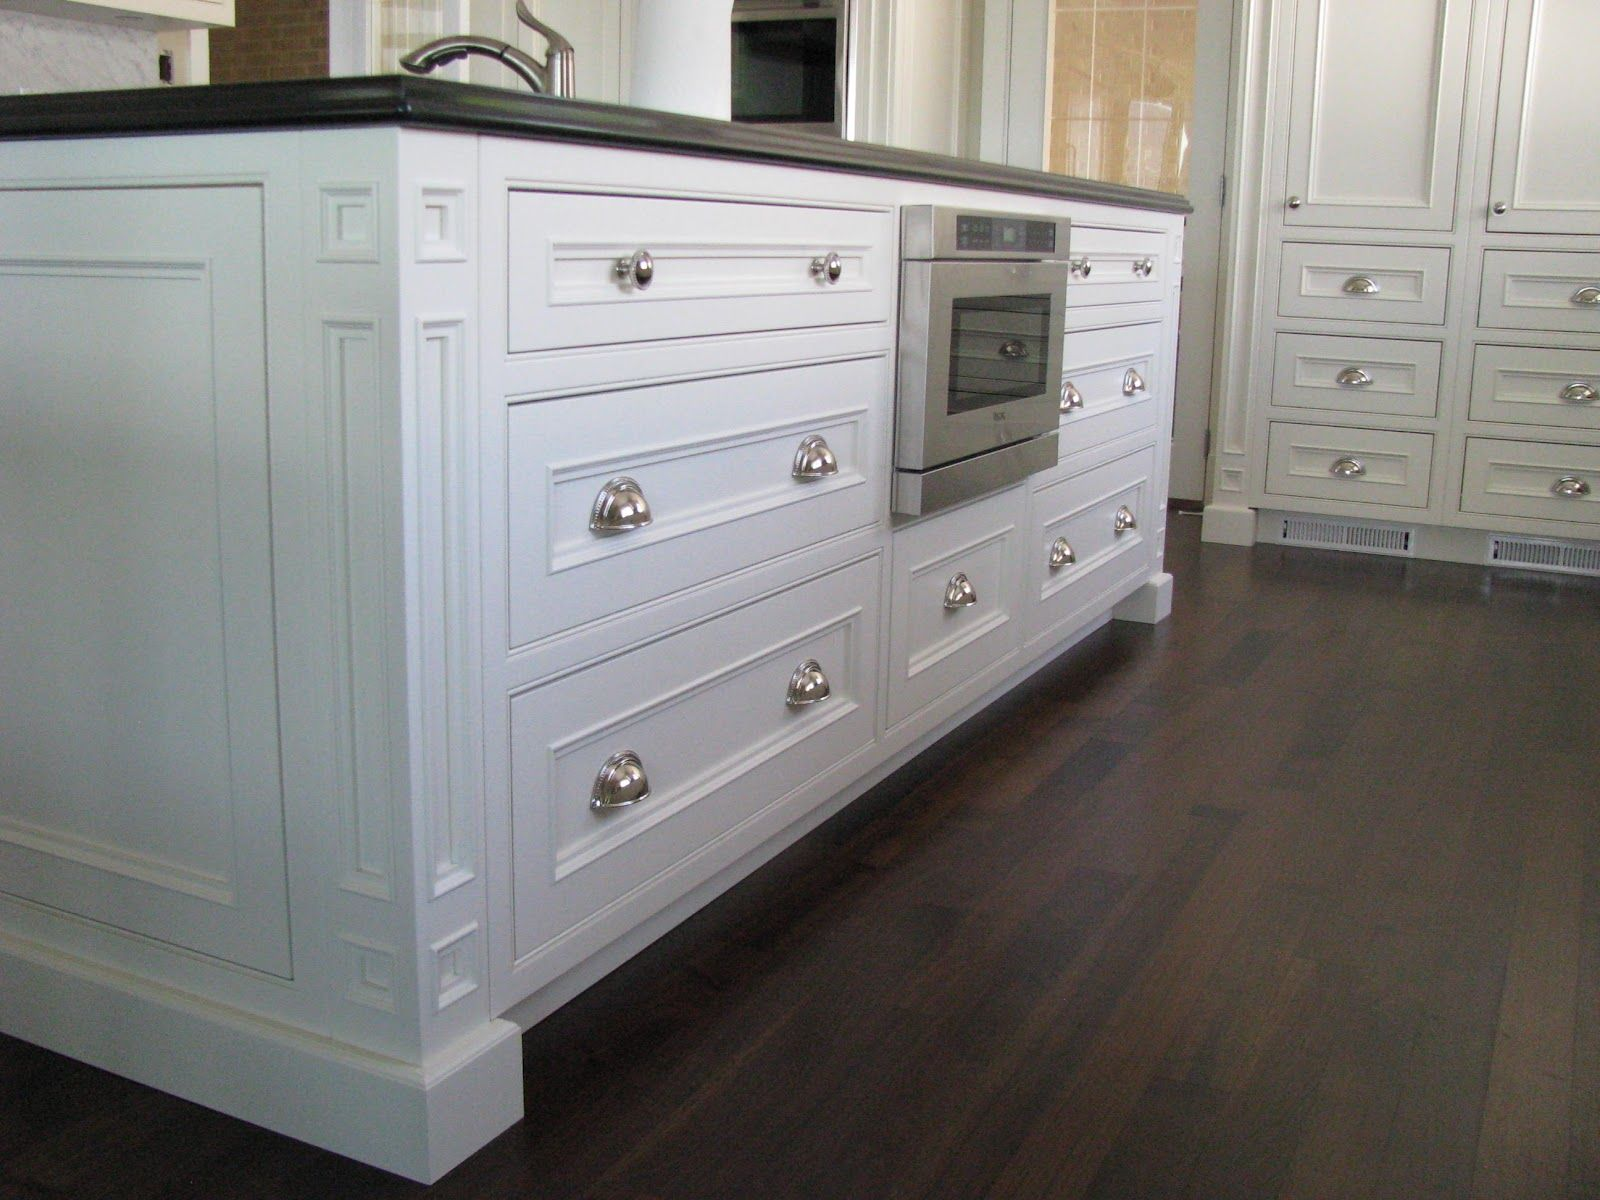 5-piece drawers, no counter top reveal, lots of drawers